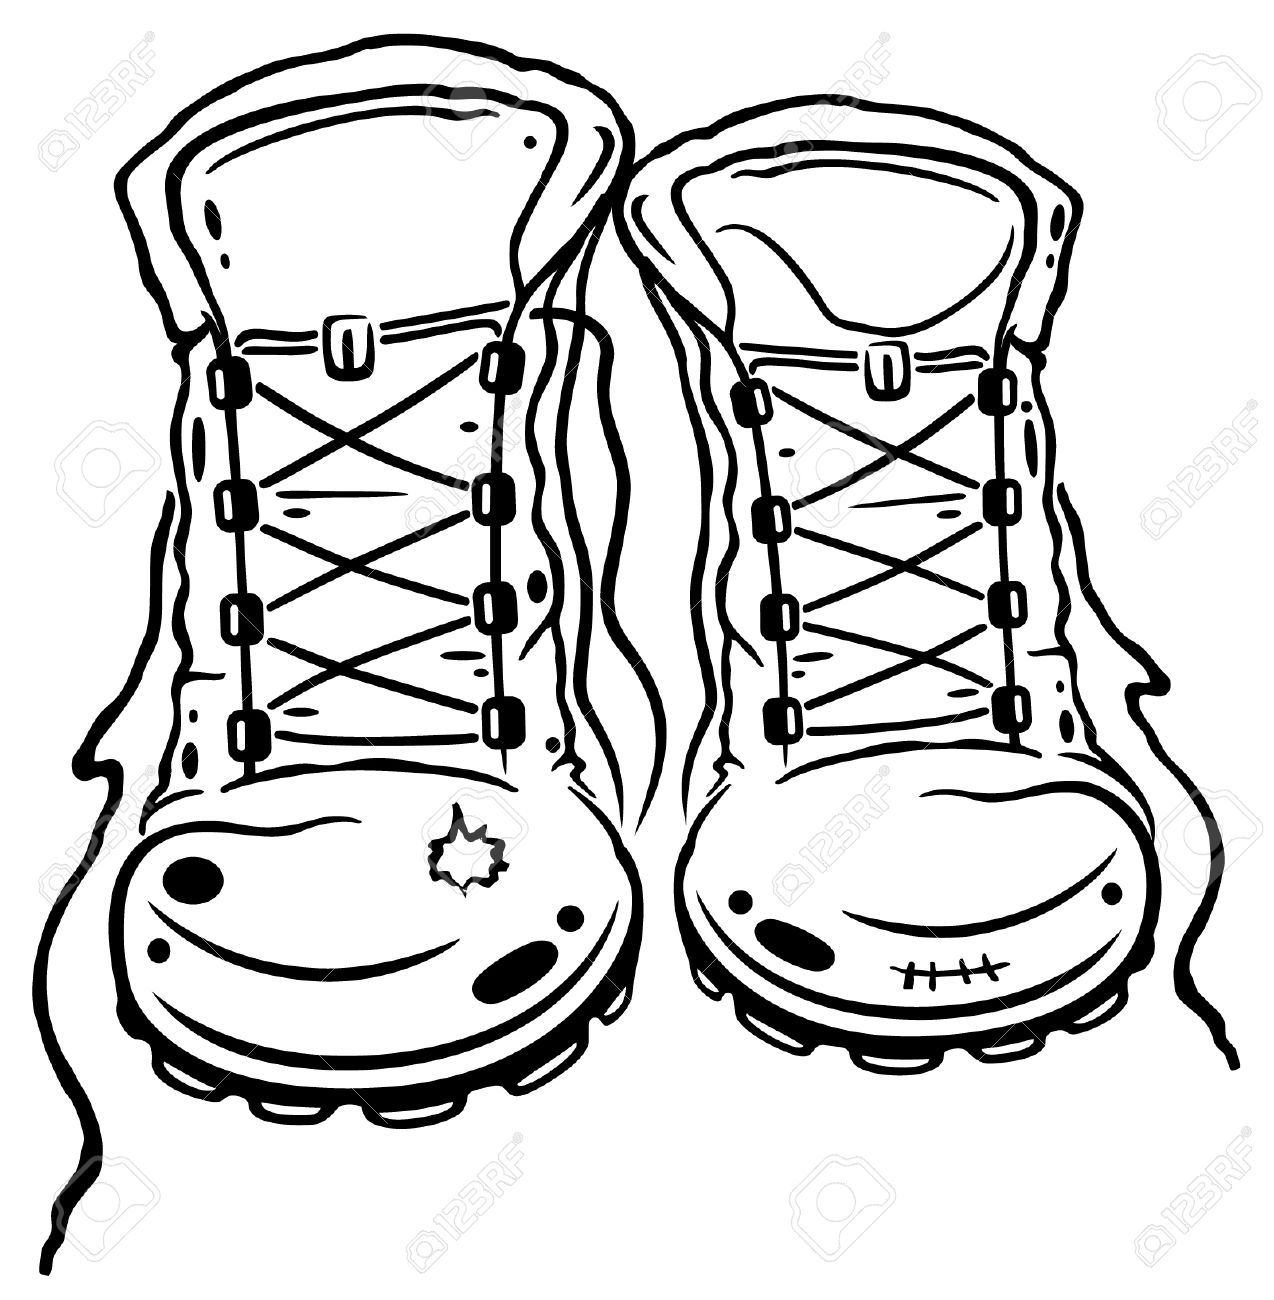 Hiking walking boot pencil. Boots clipart illustration